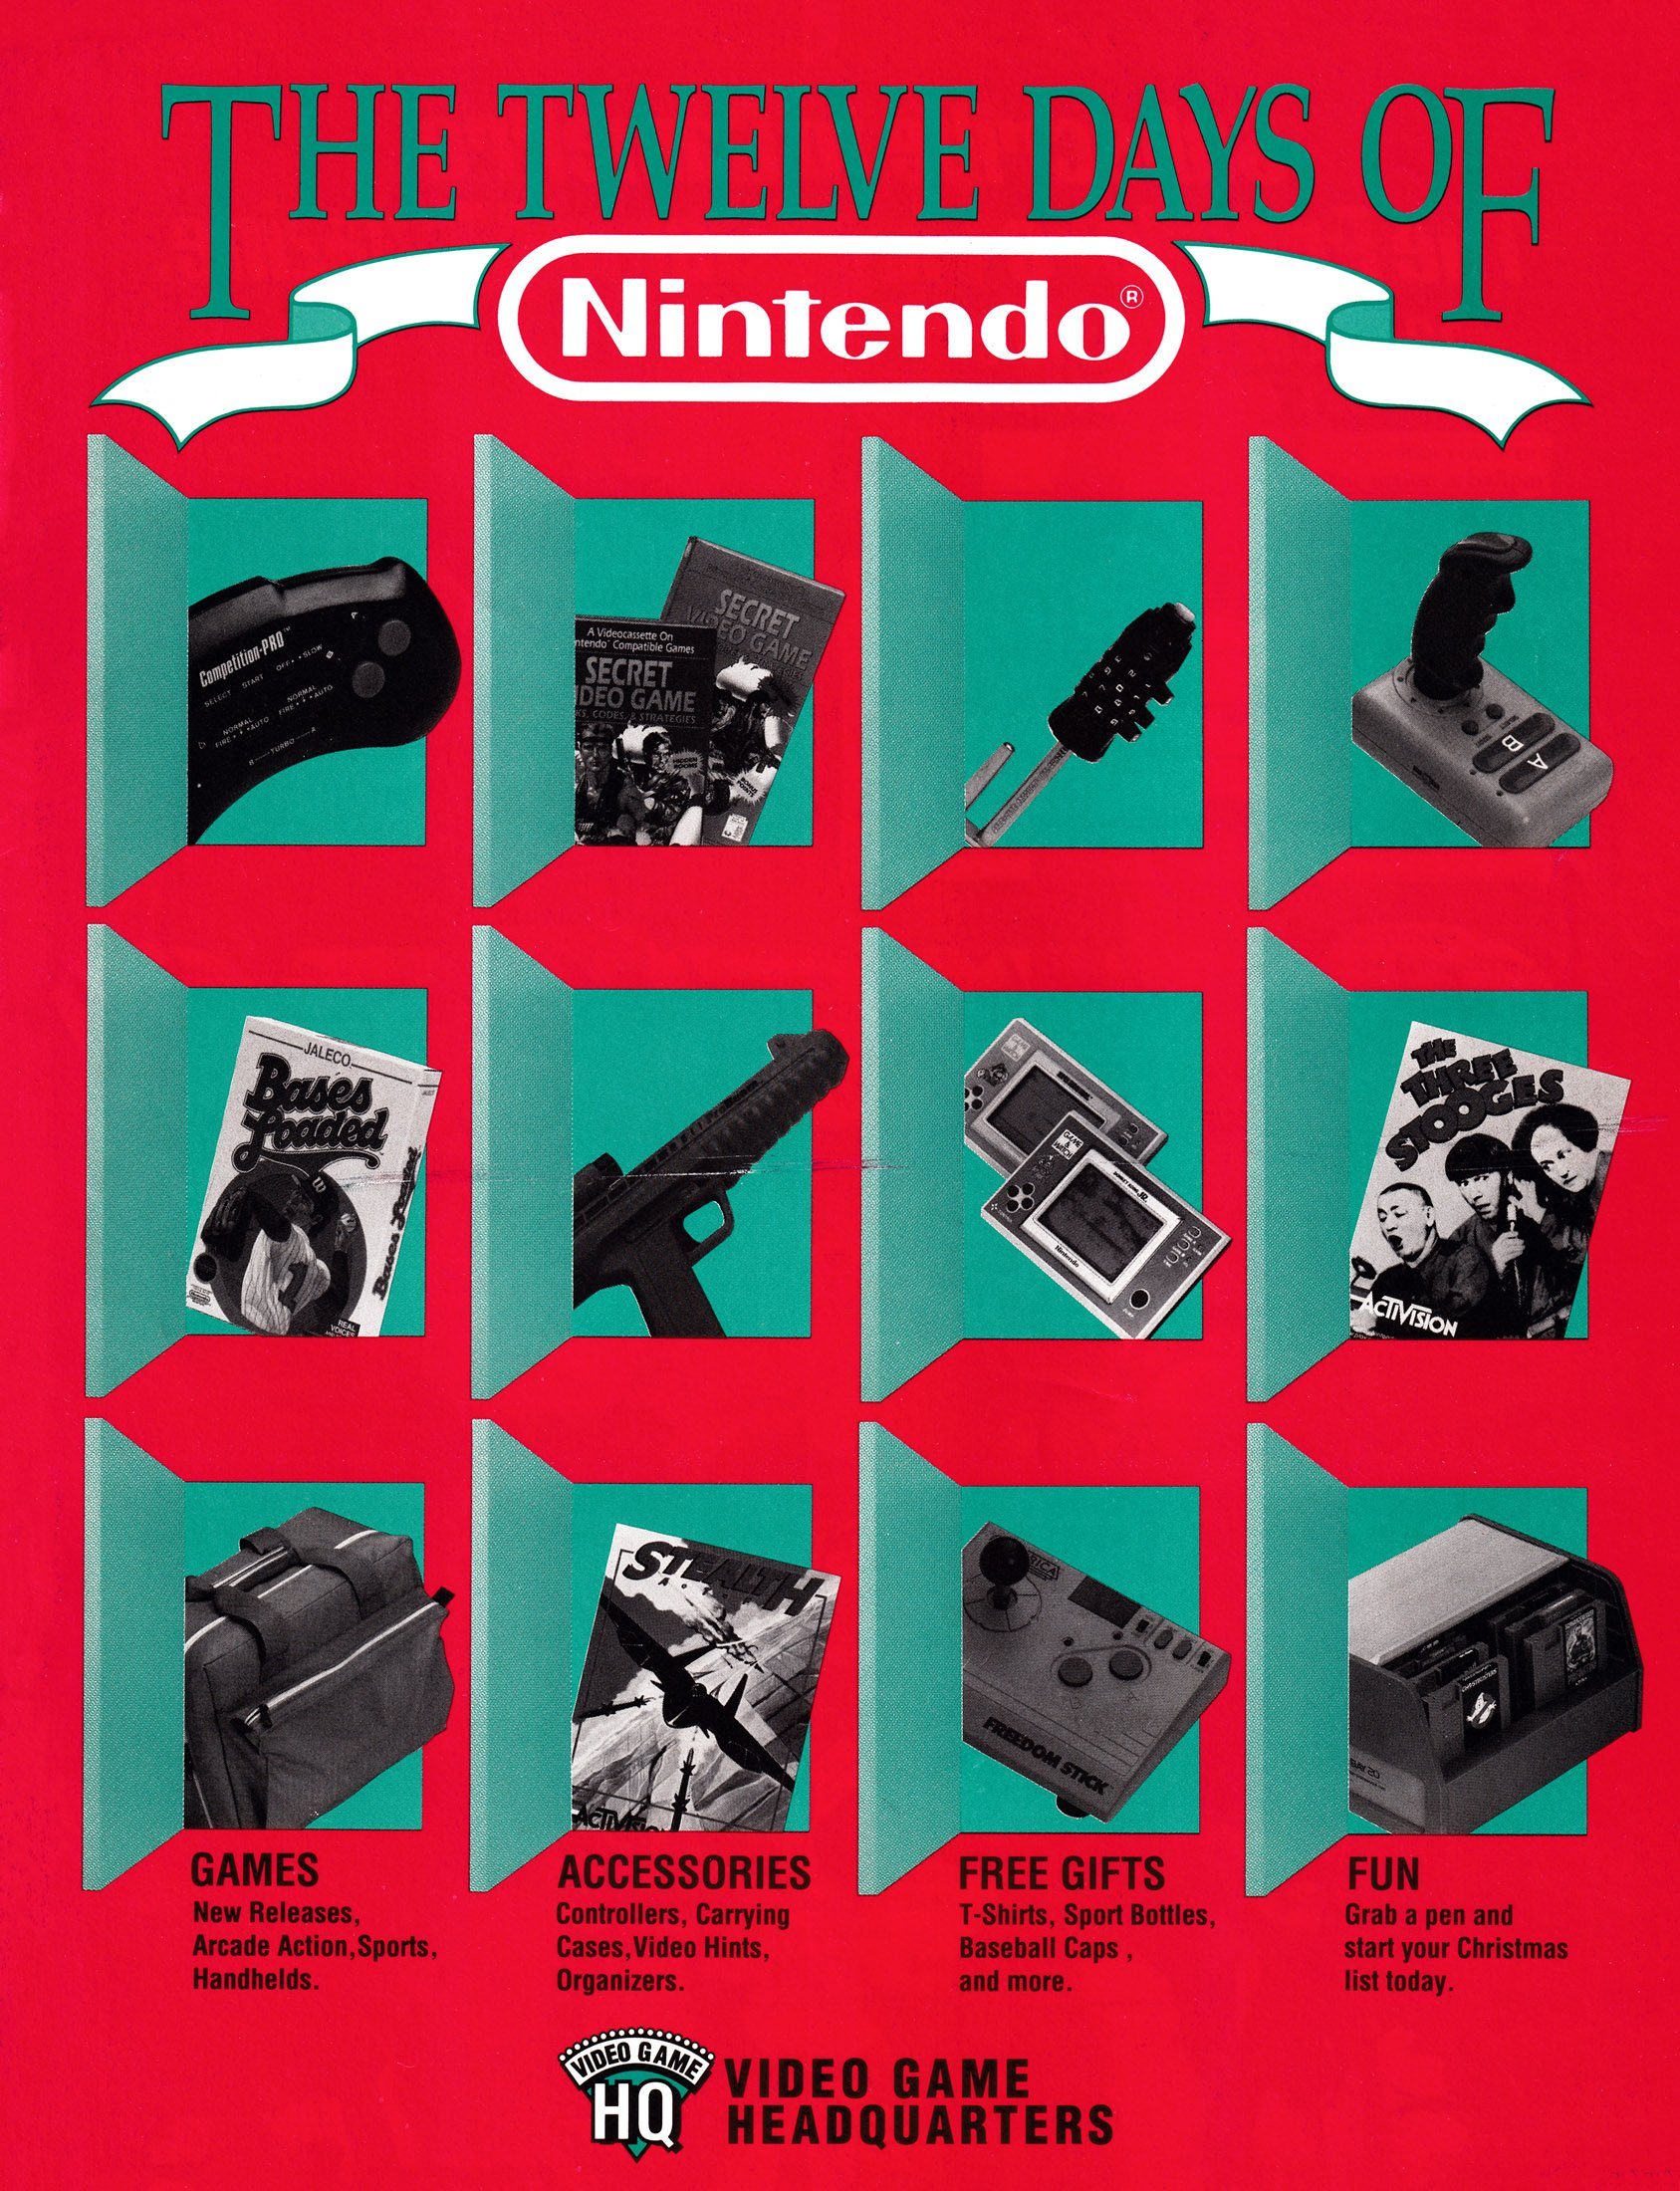 The Twelve Days of Nintendo (March 1992)